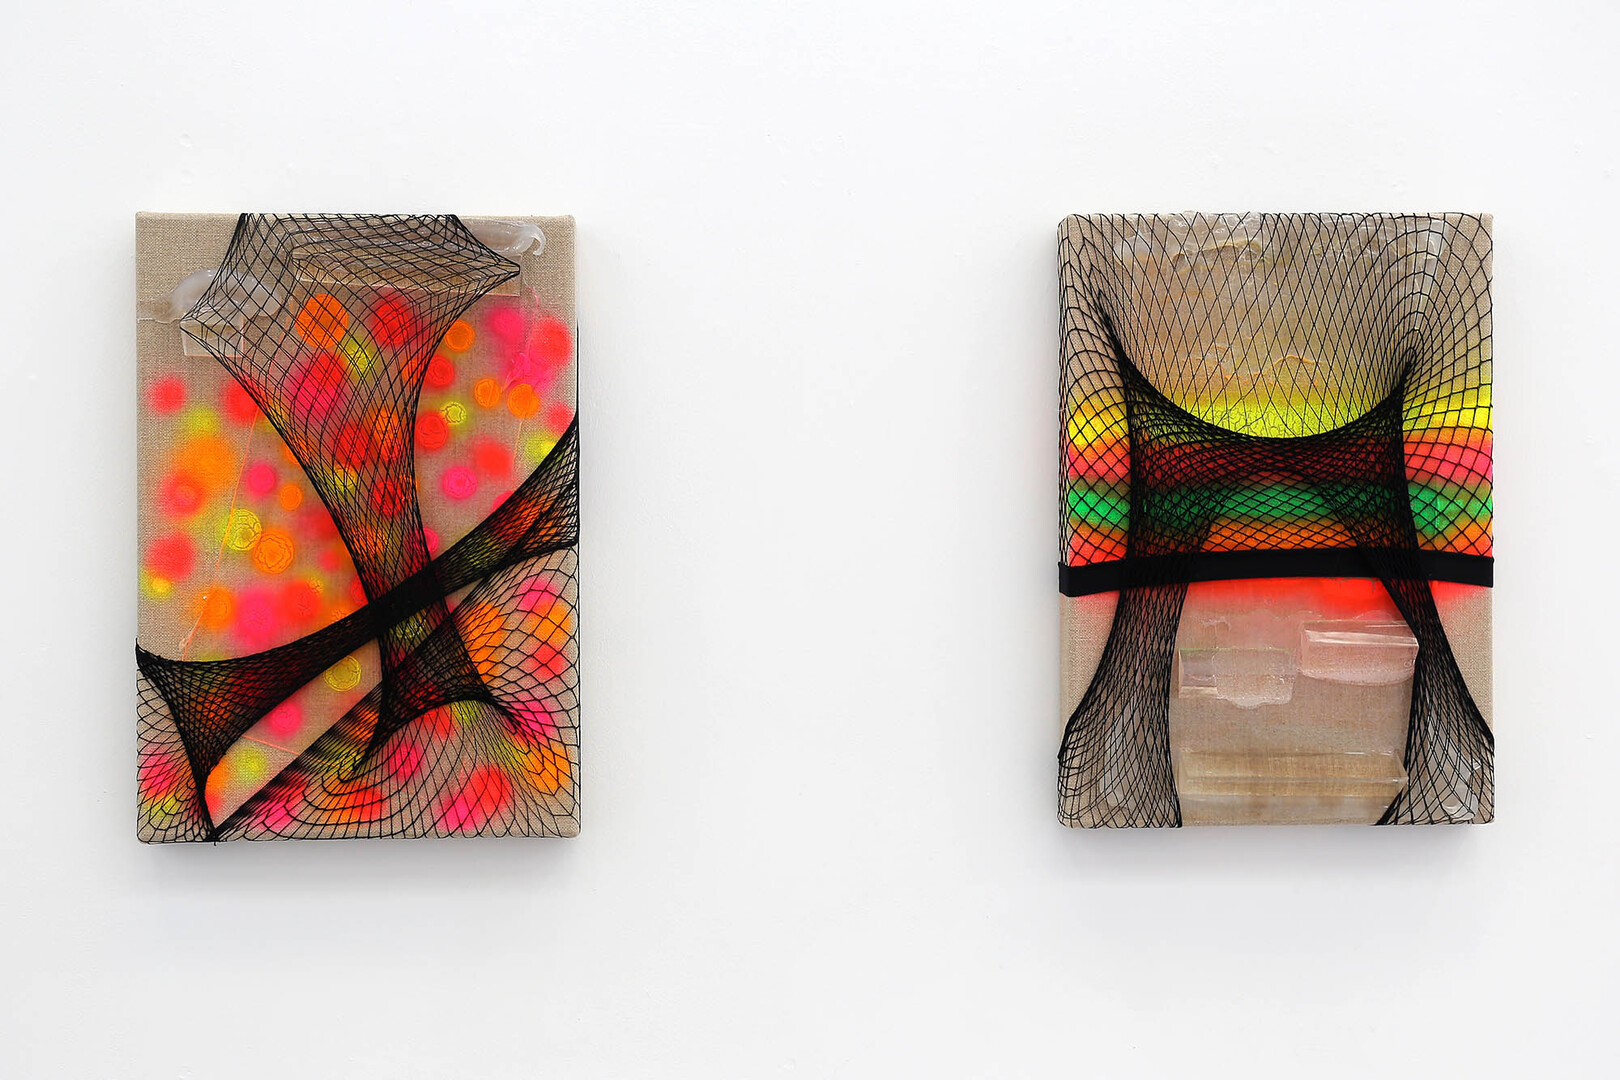 Mesh 1 & 2 - installation view